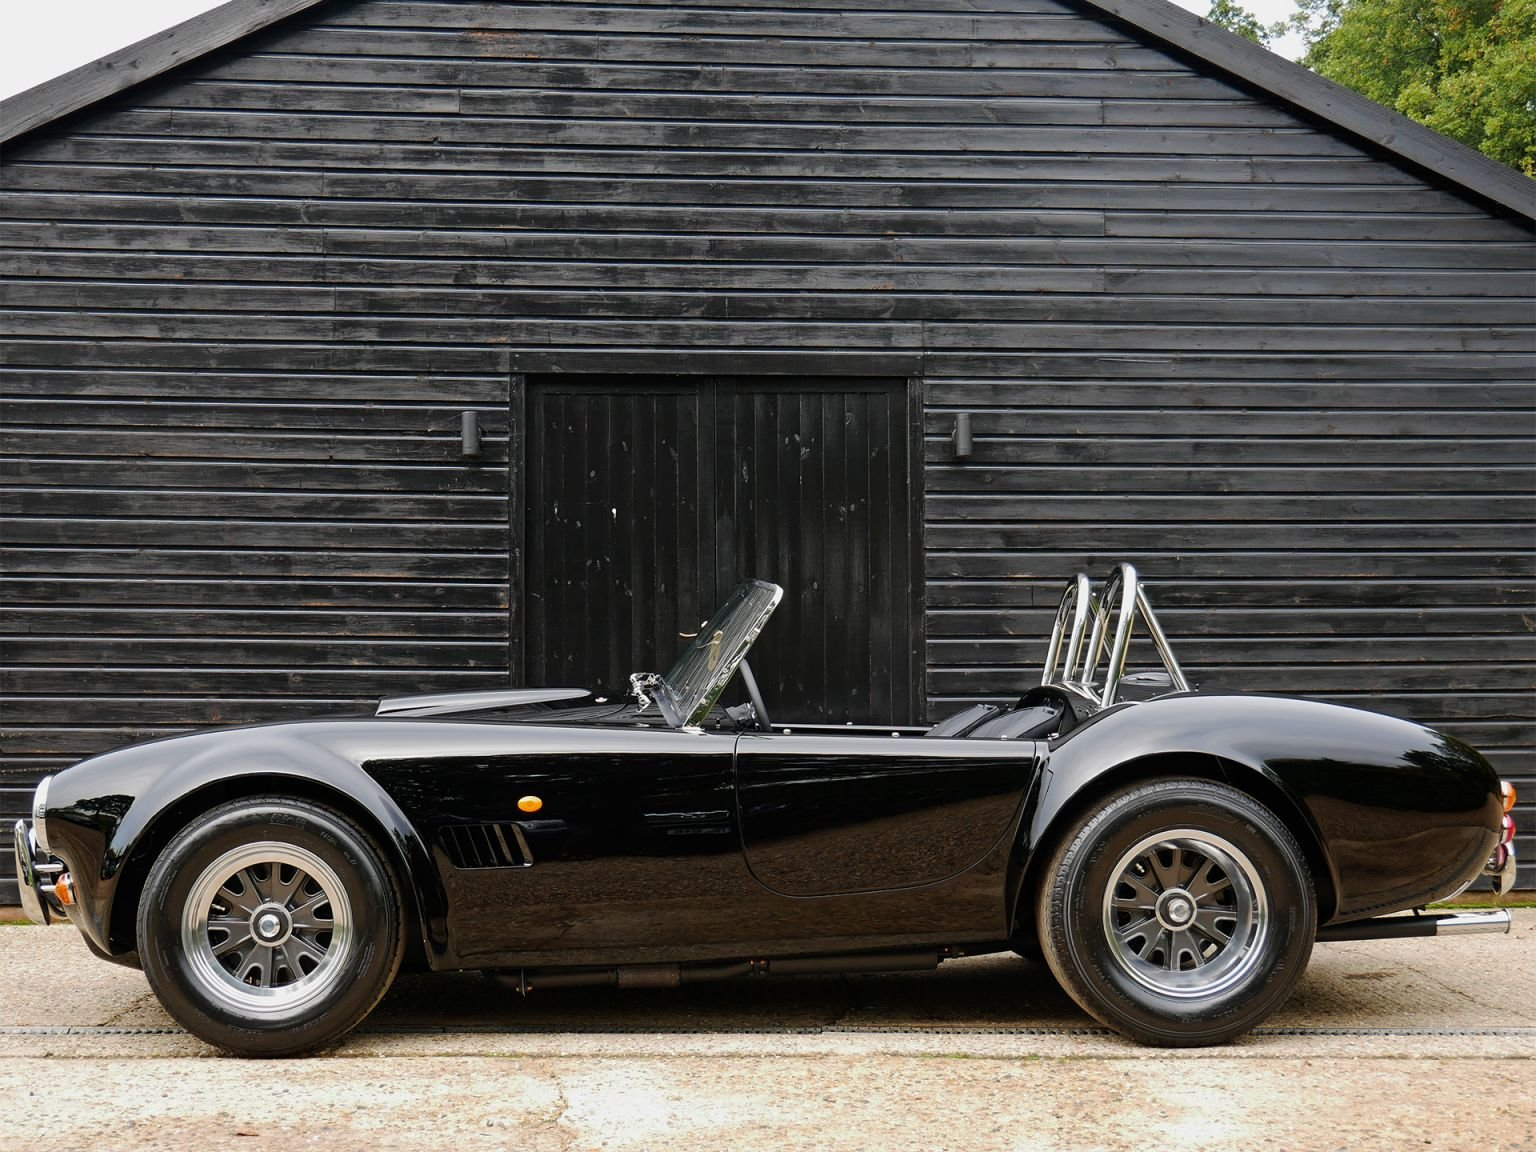 2020 AC COBRA 378 - NEW TO ORDER MKIV For Sale (picture 2 of 6)